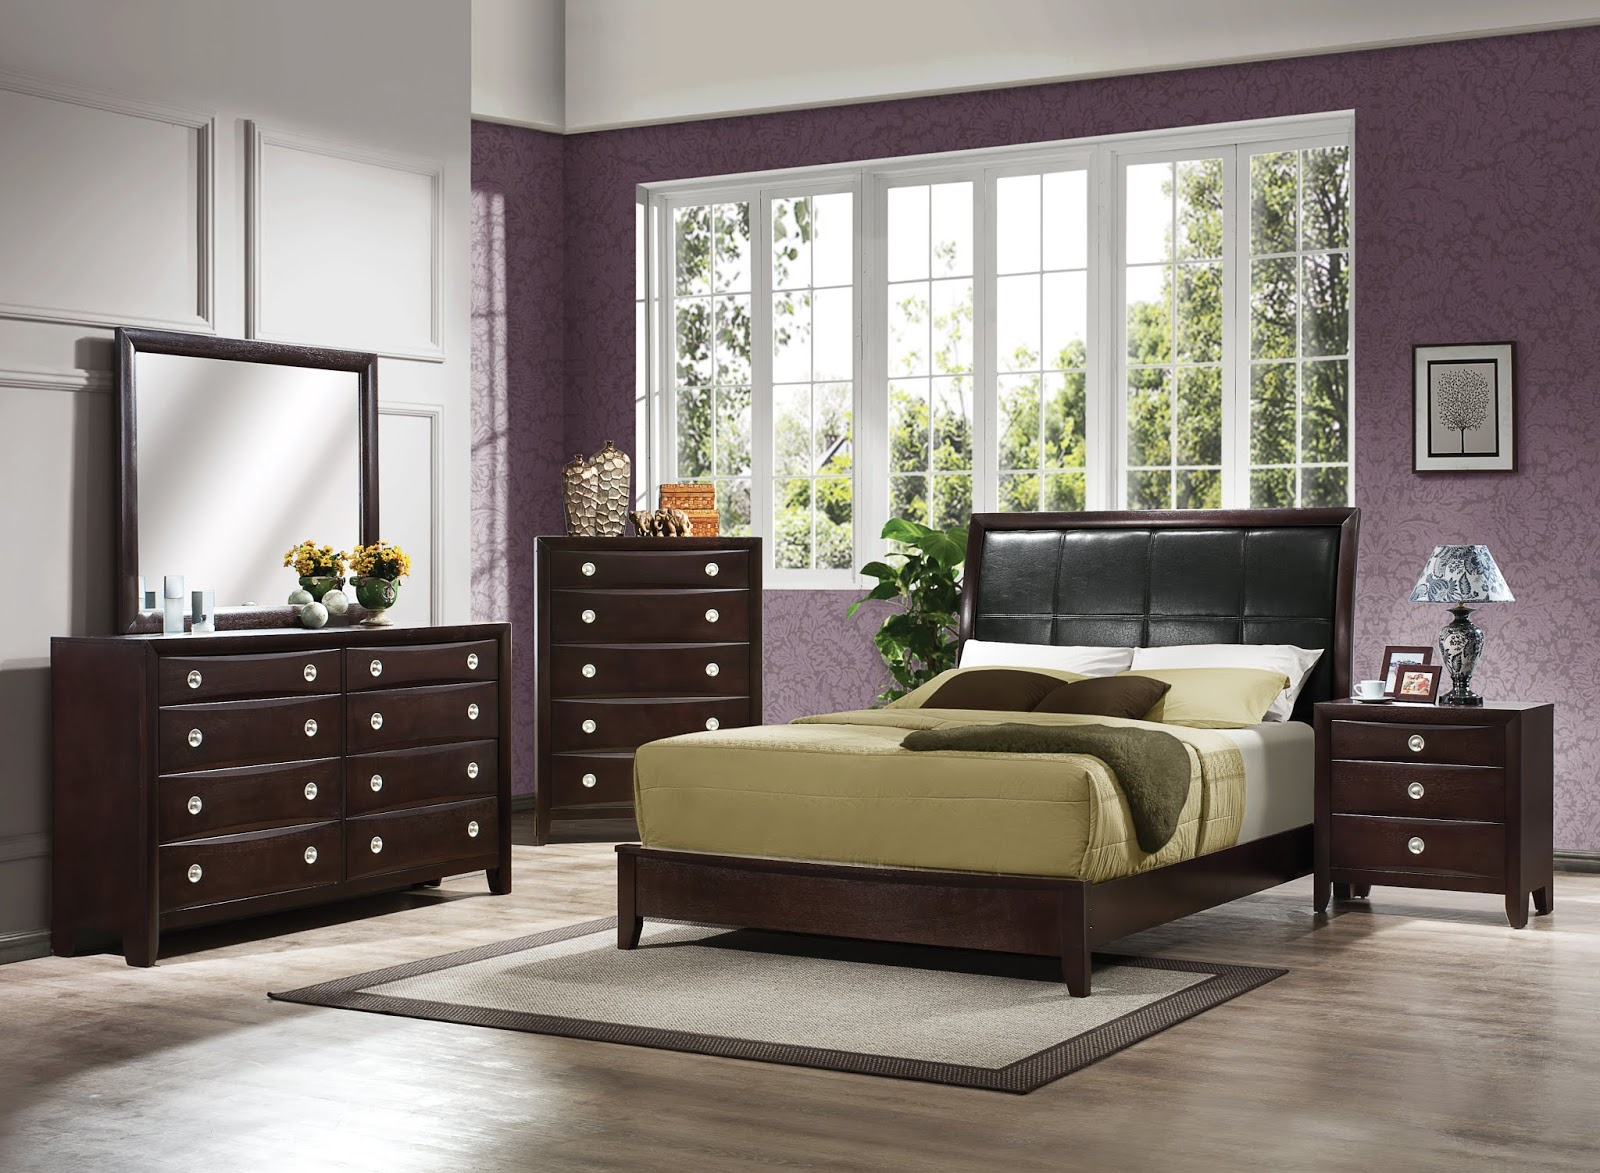 Furniture Store NYC Blog: Sleeping Beds: the most important Bedroom ...